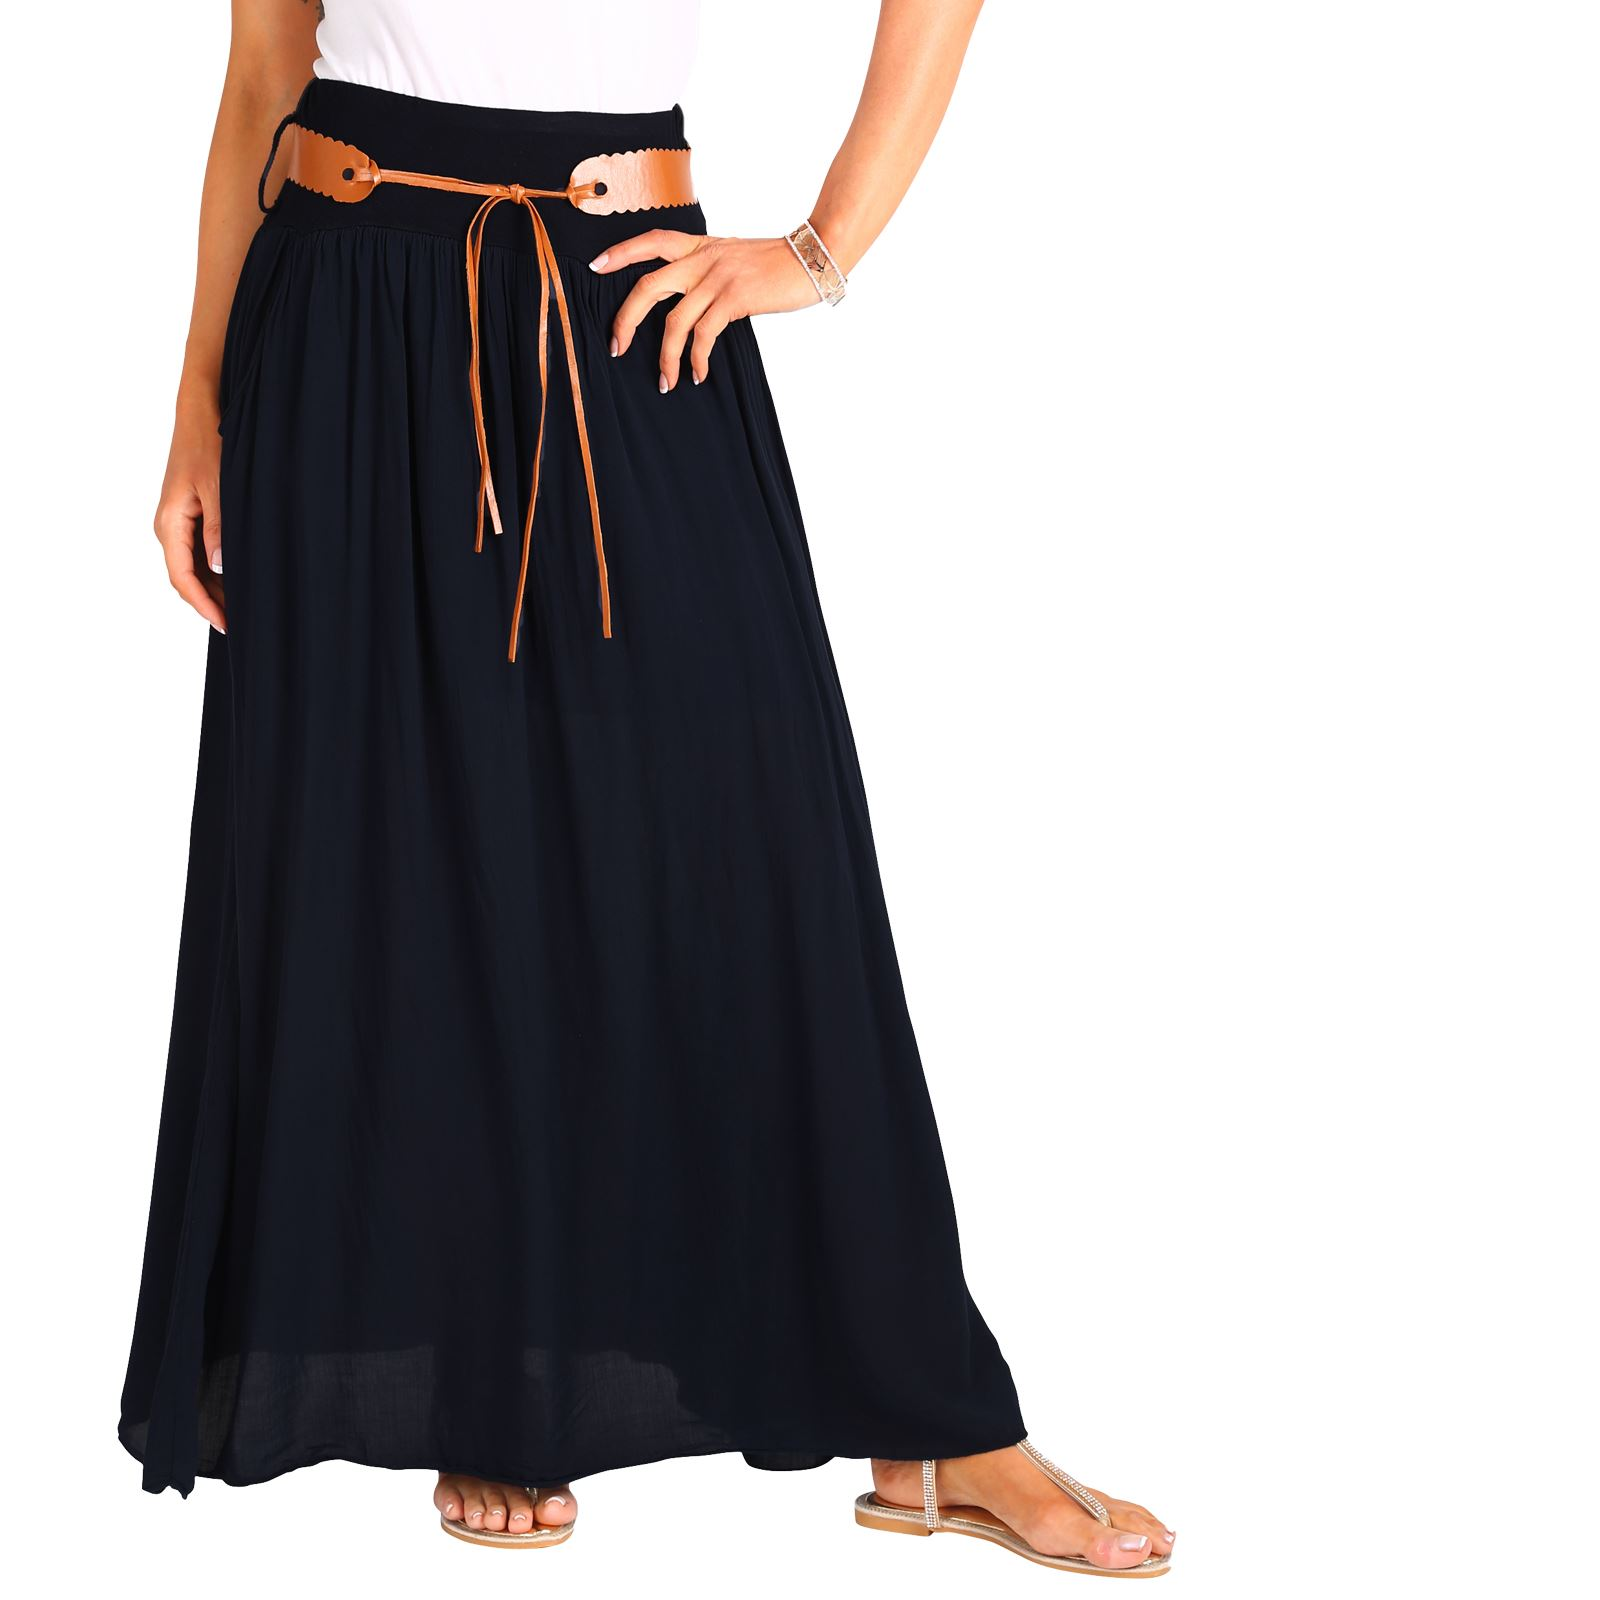 Womens-Ladies-Maxi-Skirt-Pleated-Boho-Hippie-Long-Tie-Belted-Light-Cotton-Summer thumbnail 3